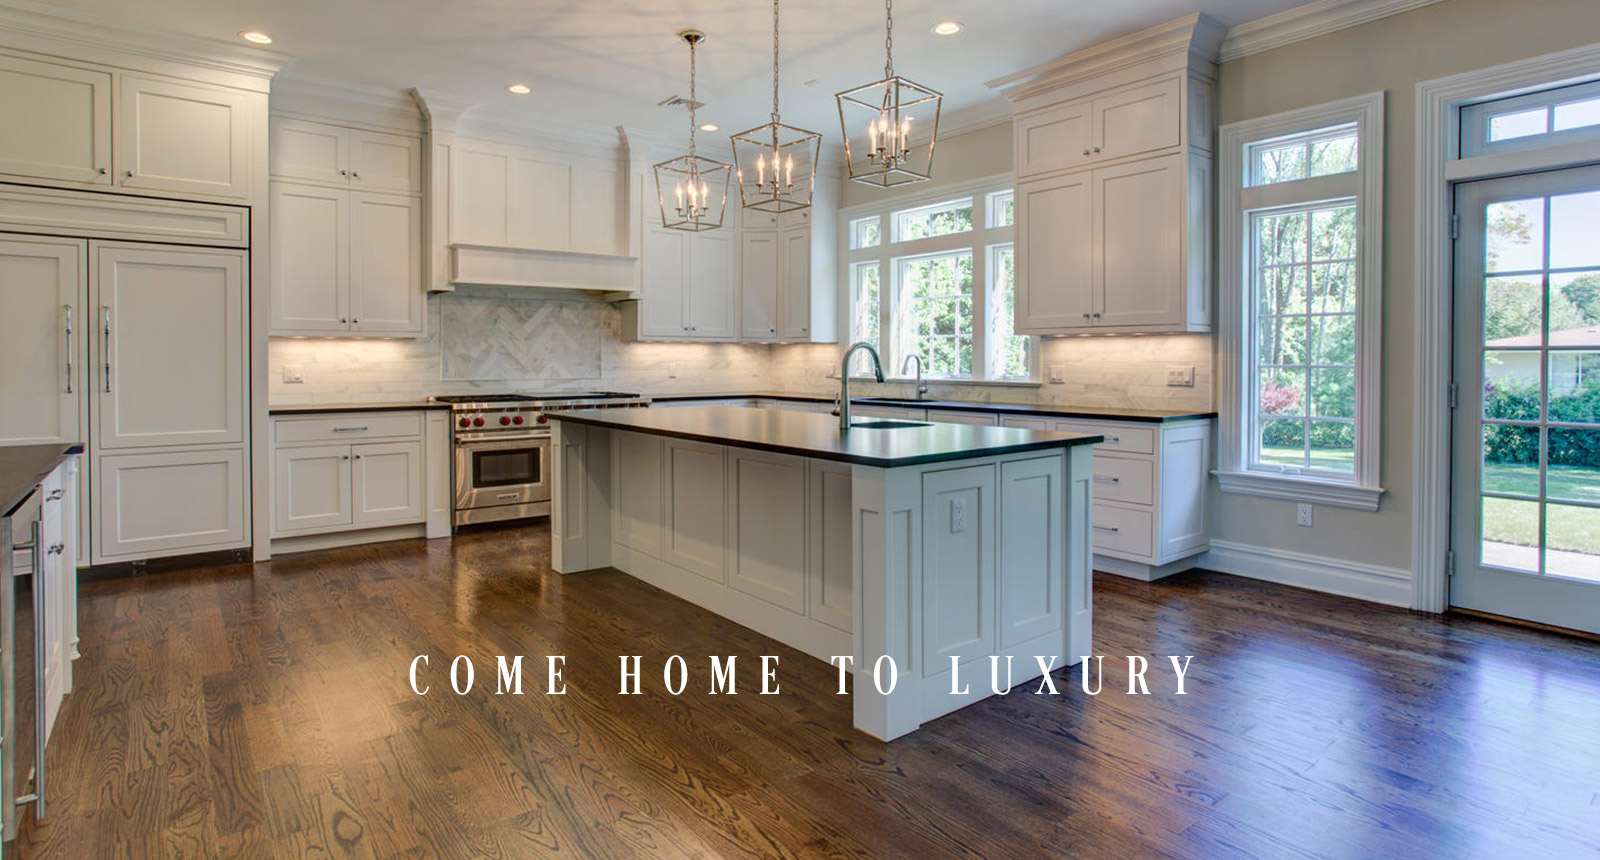 Come Home to Luxury